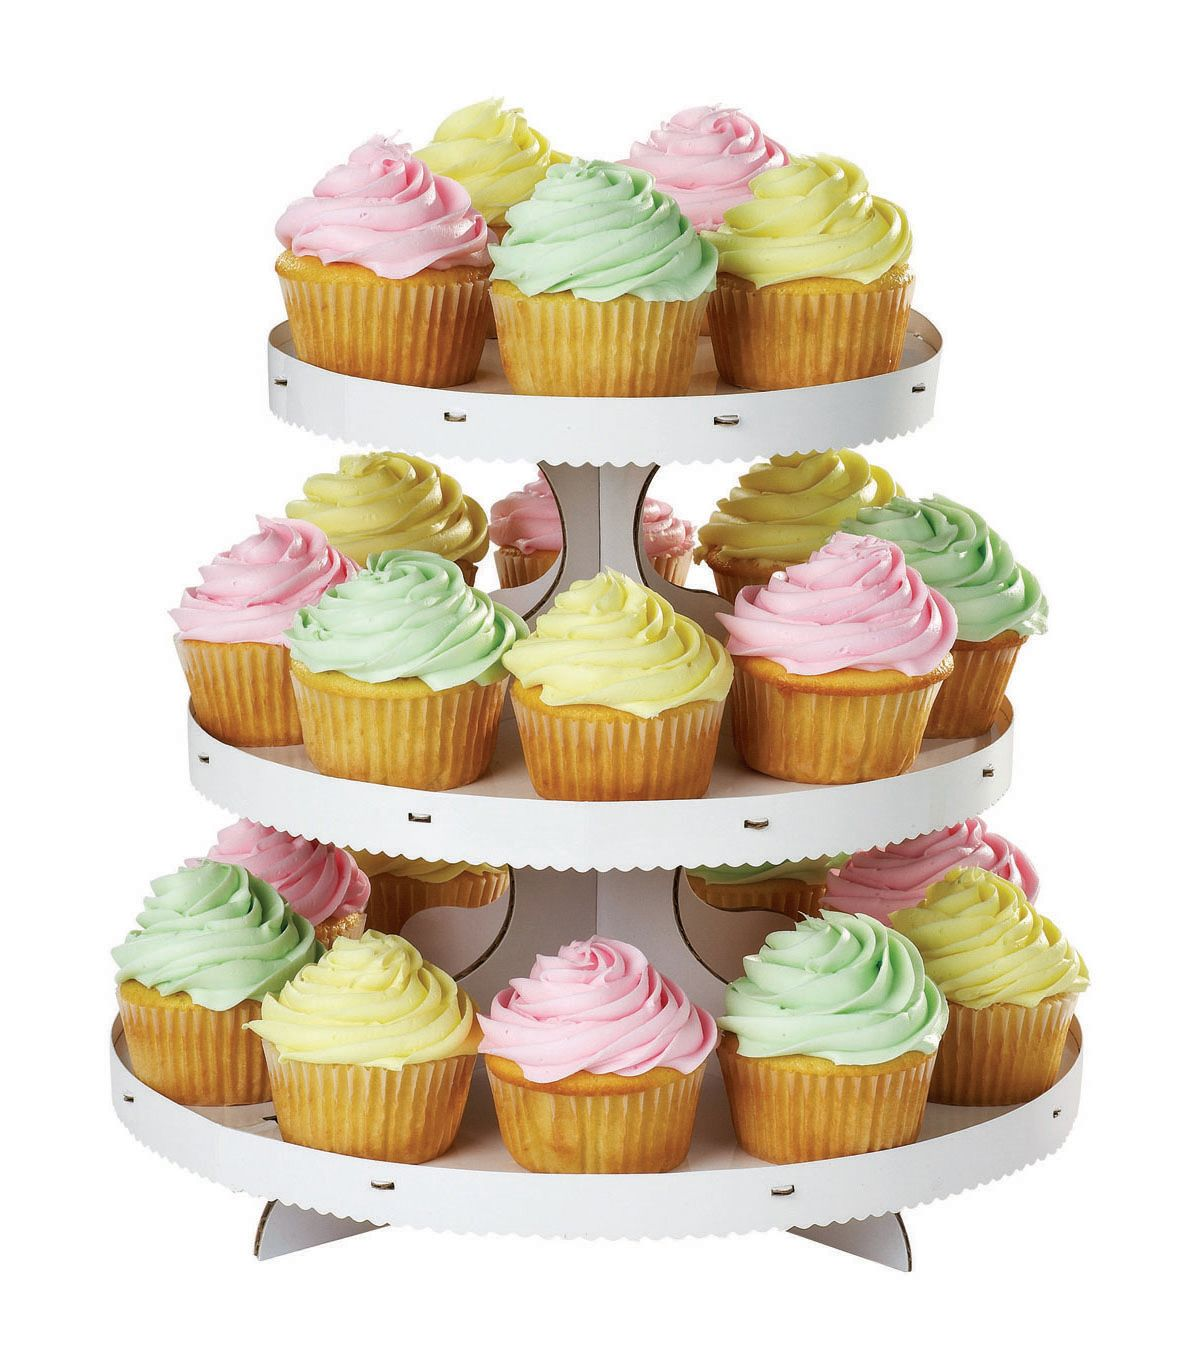 Cupcake stand with 3 tiers white cardboard cupcake stand